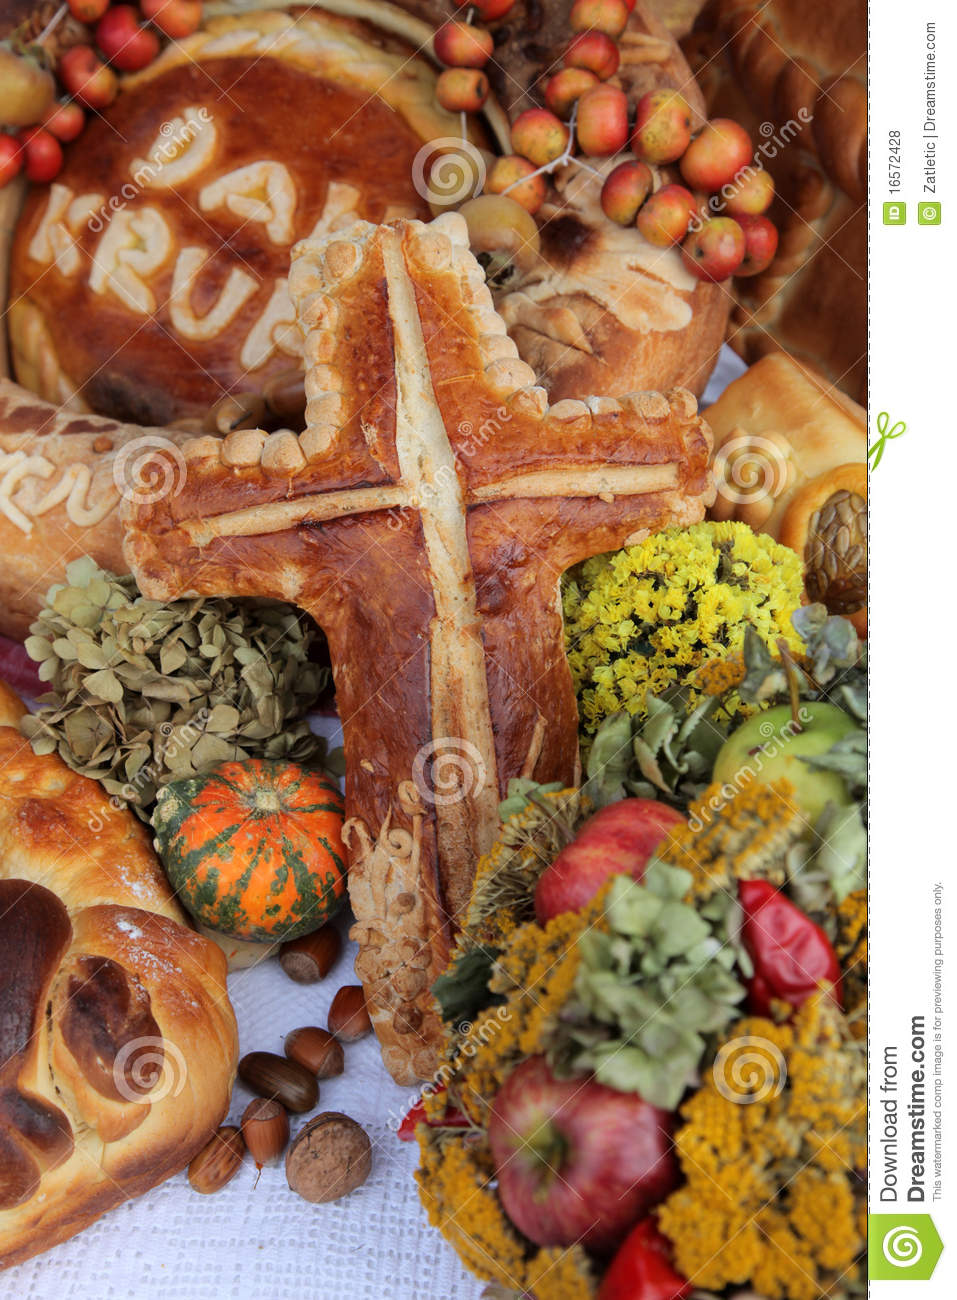 Delicious homemade christmas bread royalty free stock photos image 16572428 - Make delicious sweet bread christmas ...